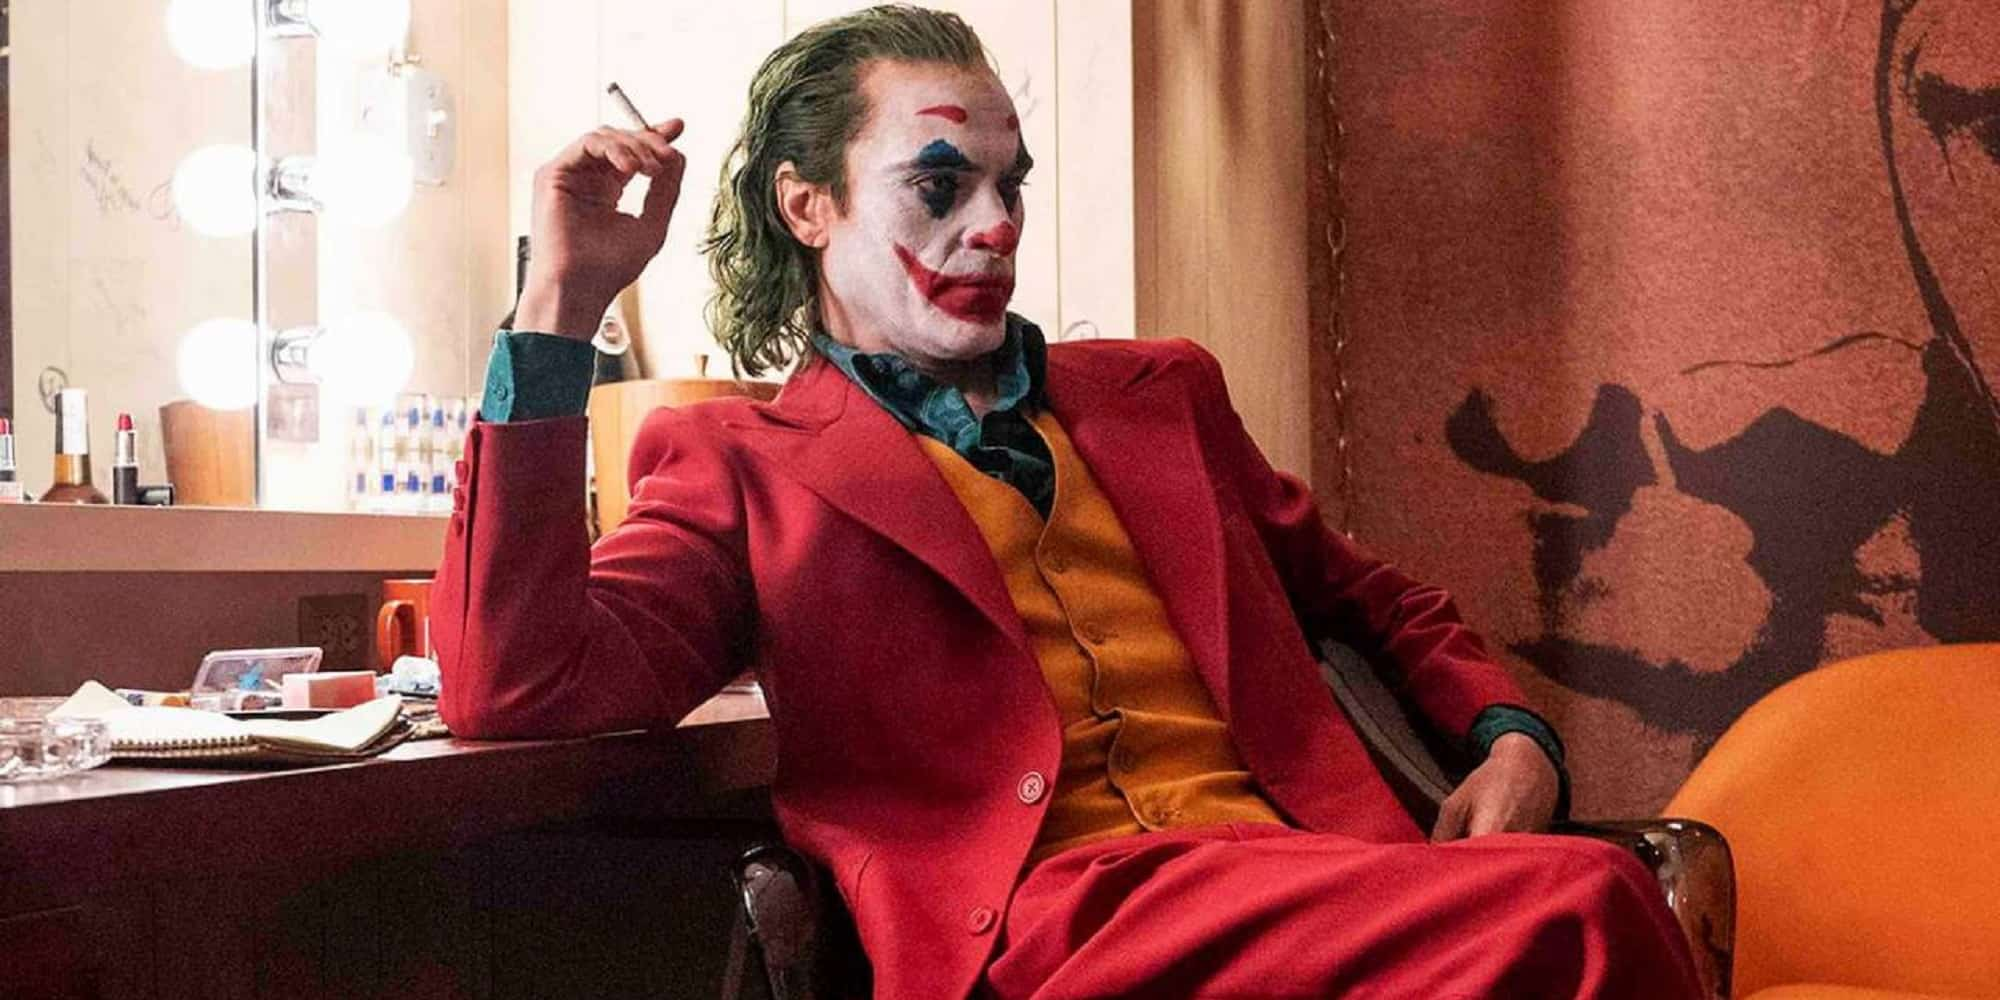 Joker Comic Book Movies Award Shows Oscars Cool Guy